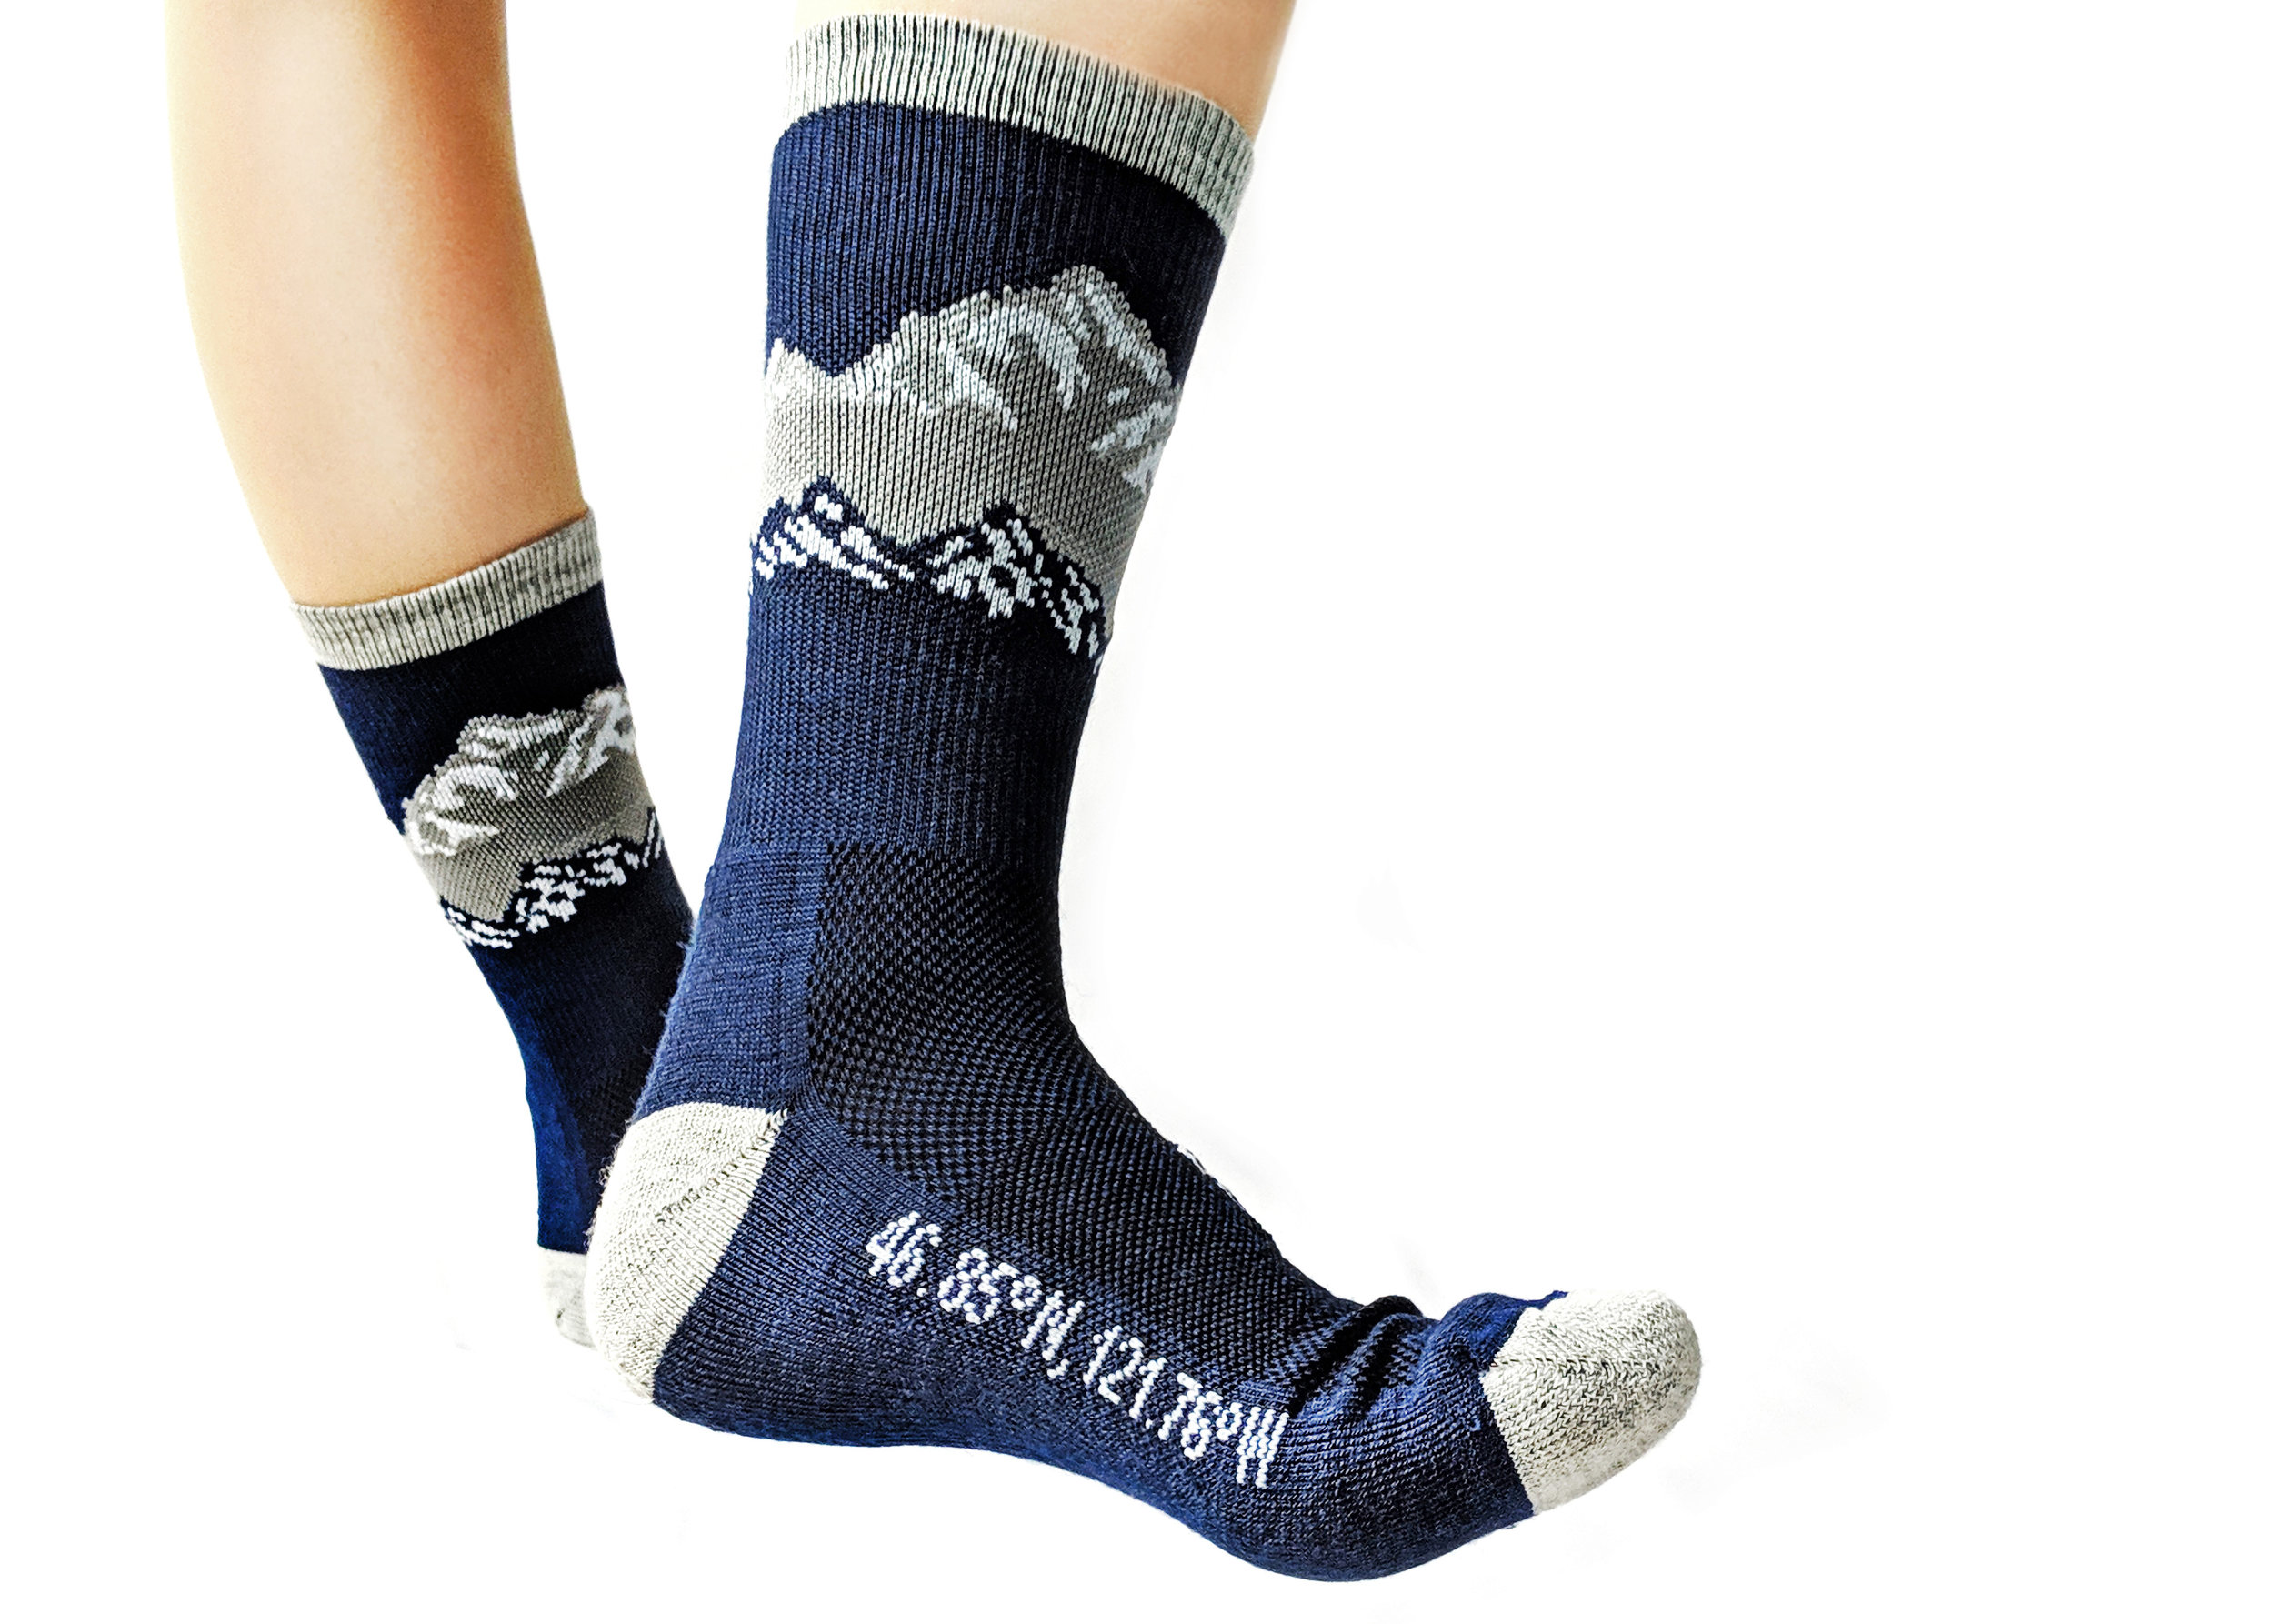 'The Cascades' sock style featured here - From The Ground Up brand